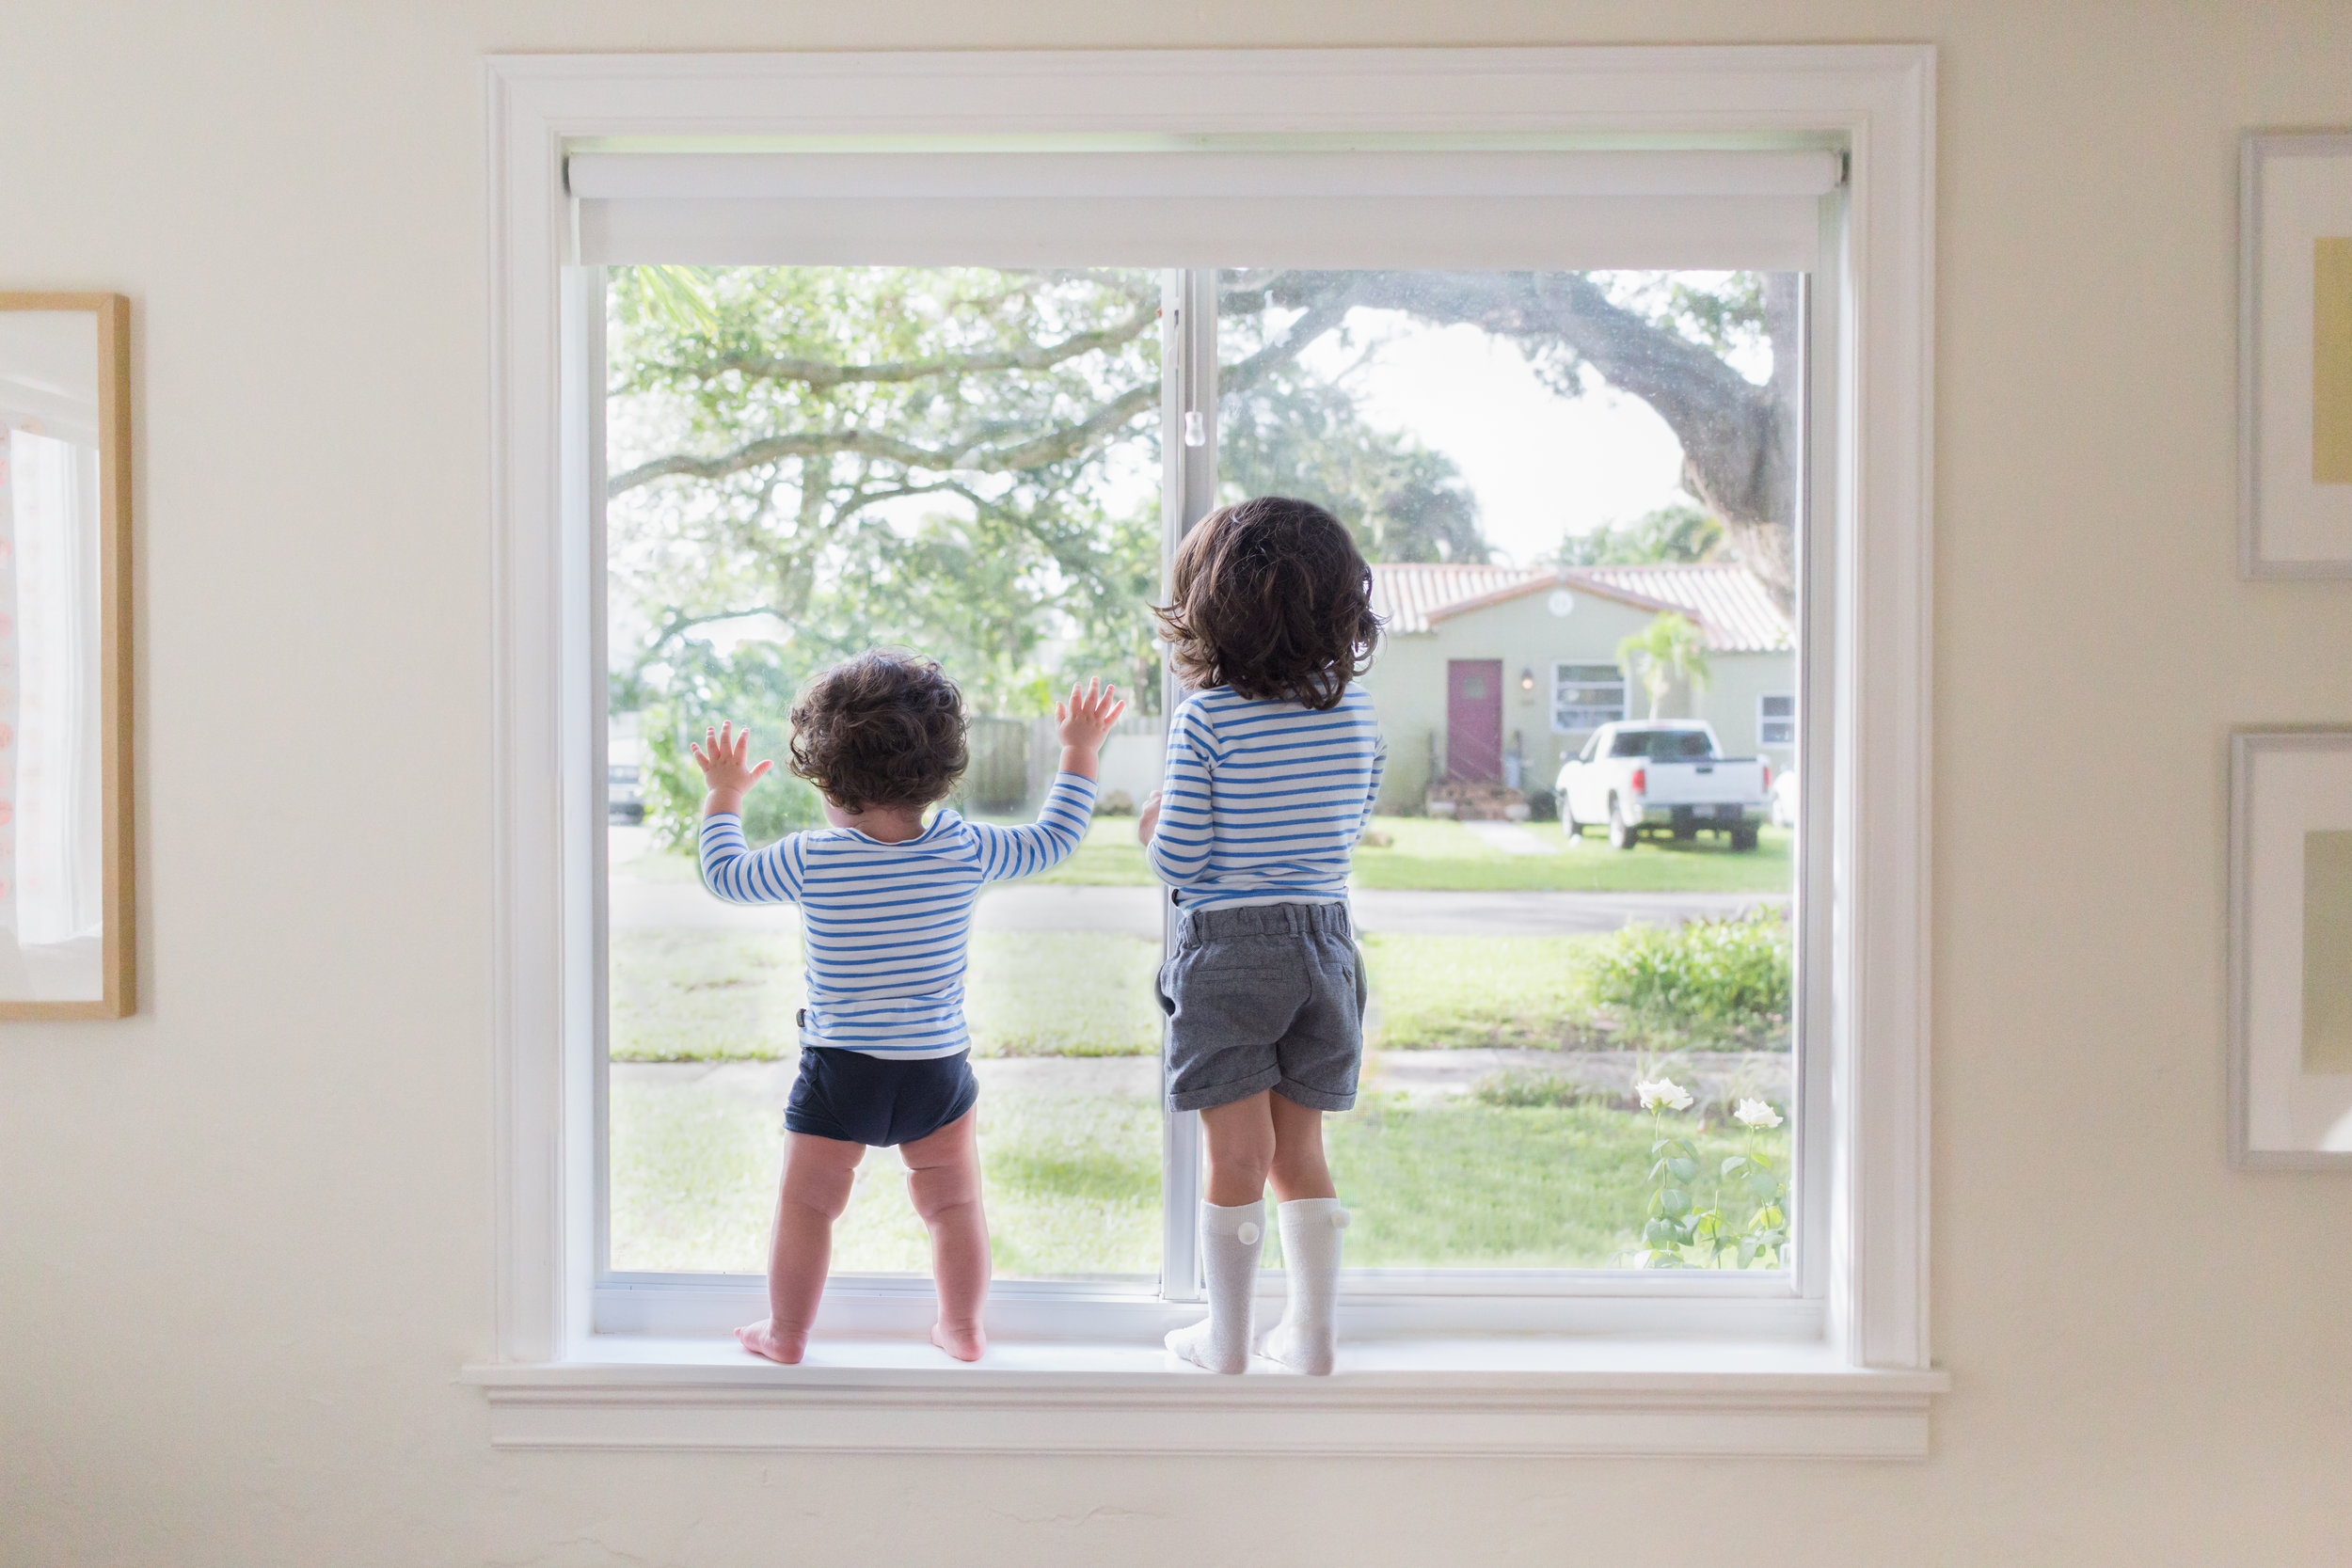 (NOTE: This is a composite image. Mom and Dad were right below the children. A seperate image of the window was taken afterwards. The children were never in any danger.)